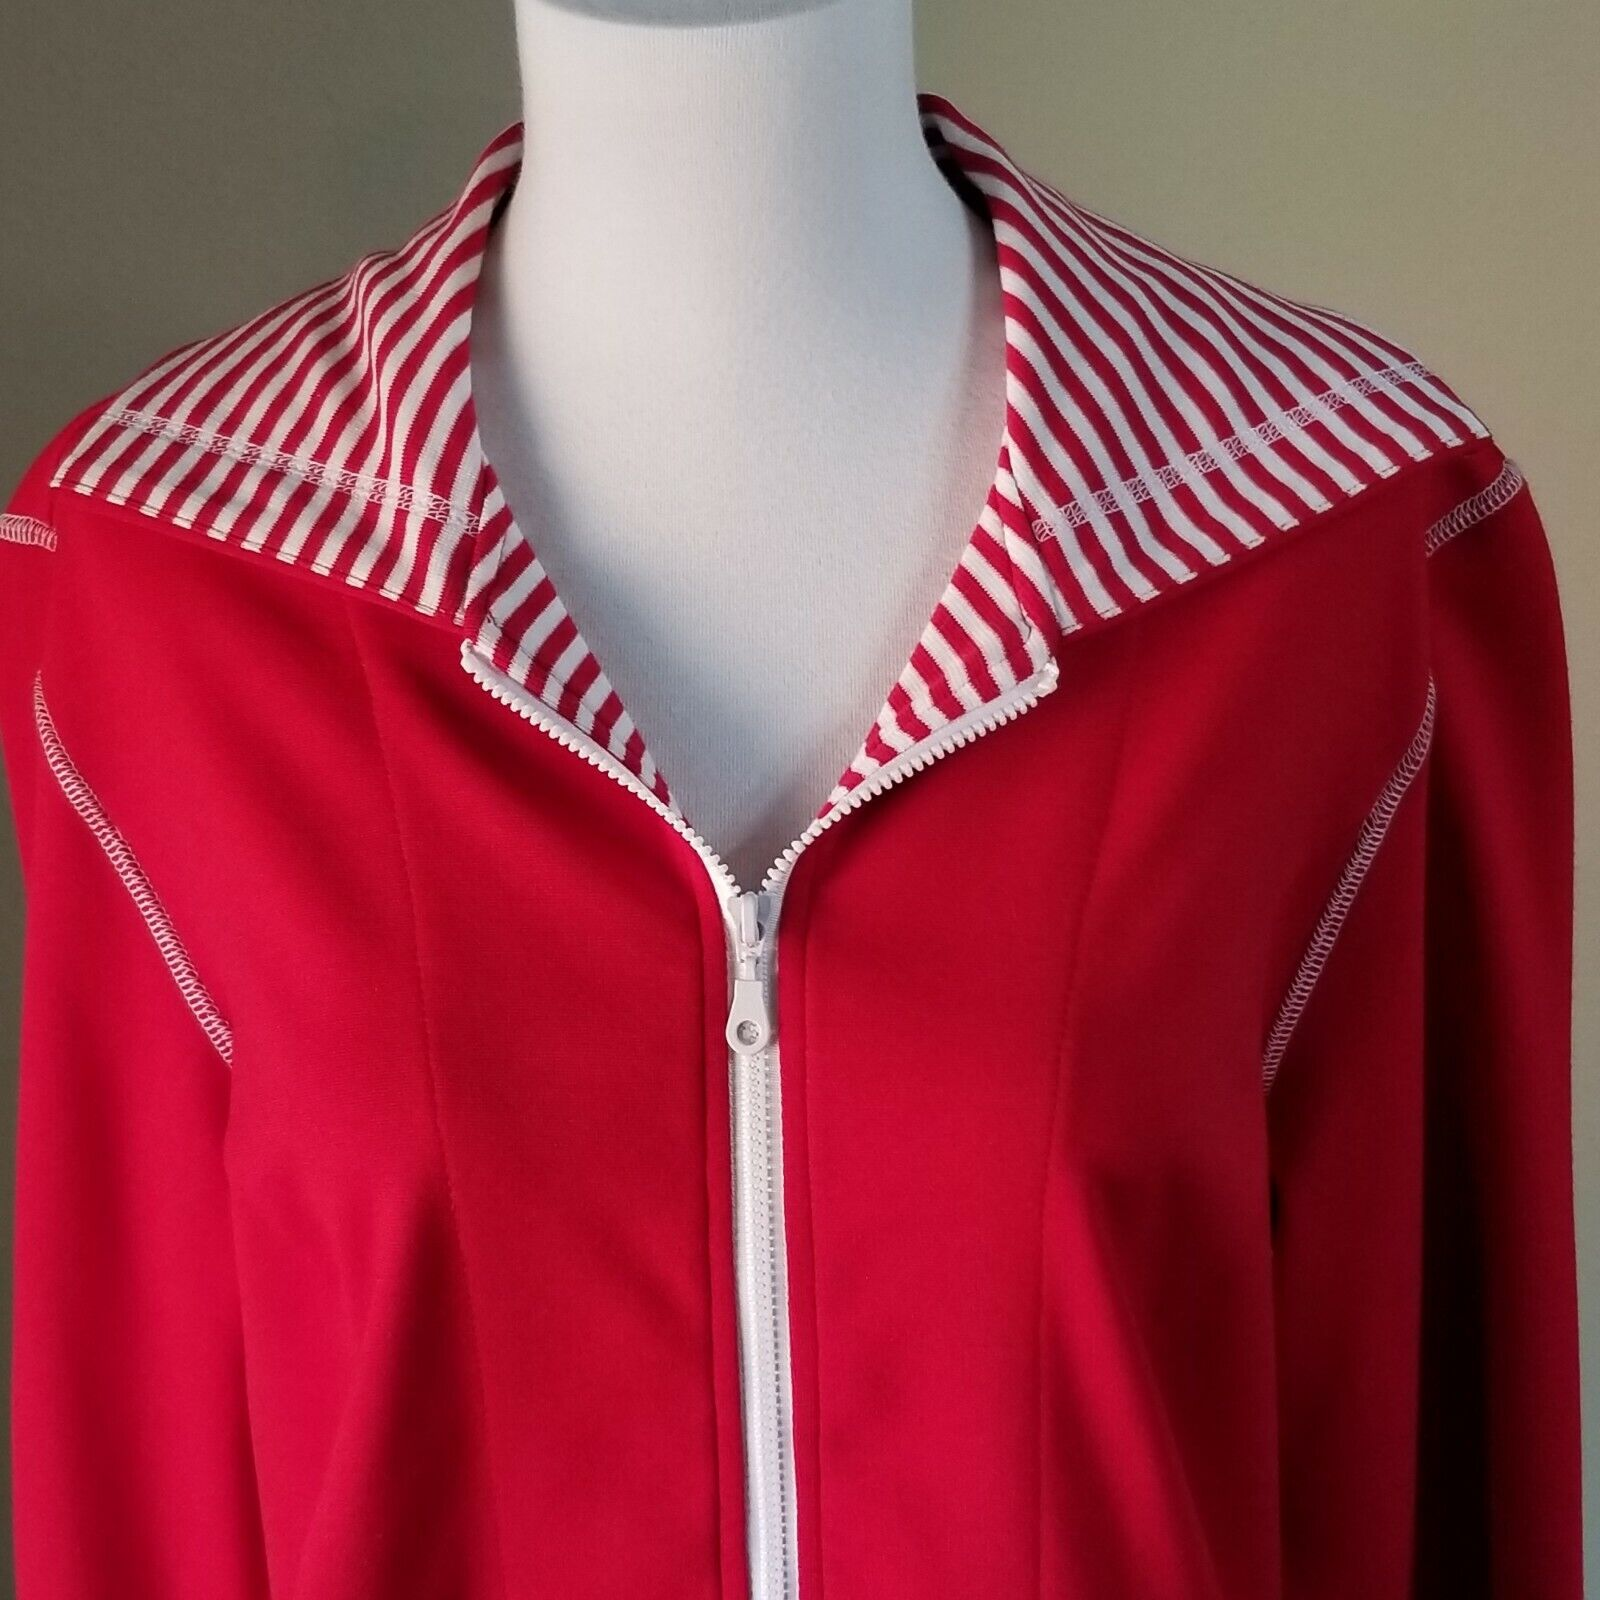 Picadilly Fashions Athletic Jacket Top Red White Small Activewear Stripe Zip Up - $15.00